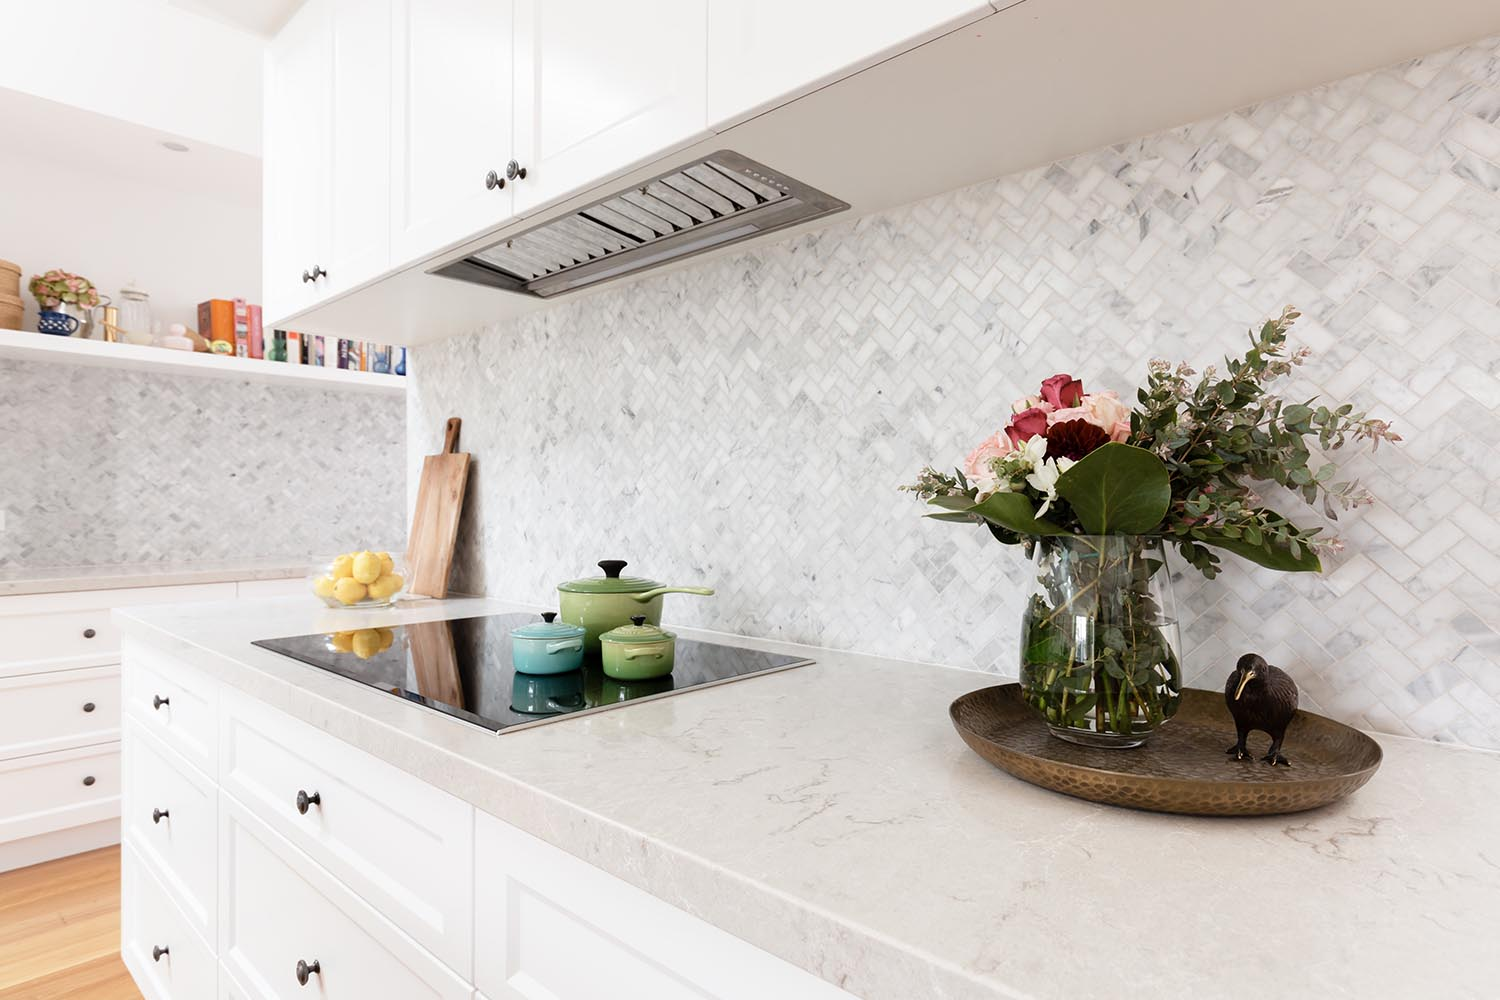 Kitchen Renovation Cost: How Much Does a New Kitchen Cost ...